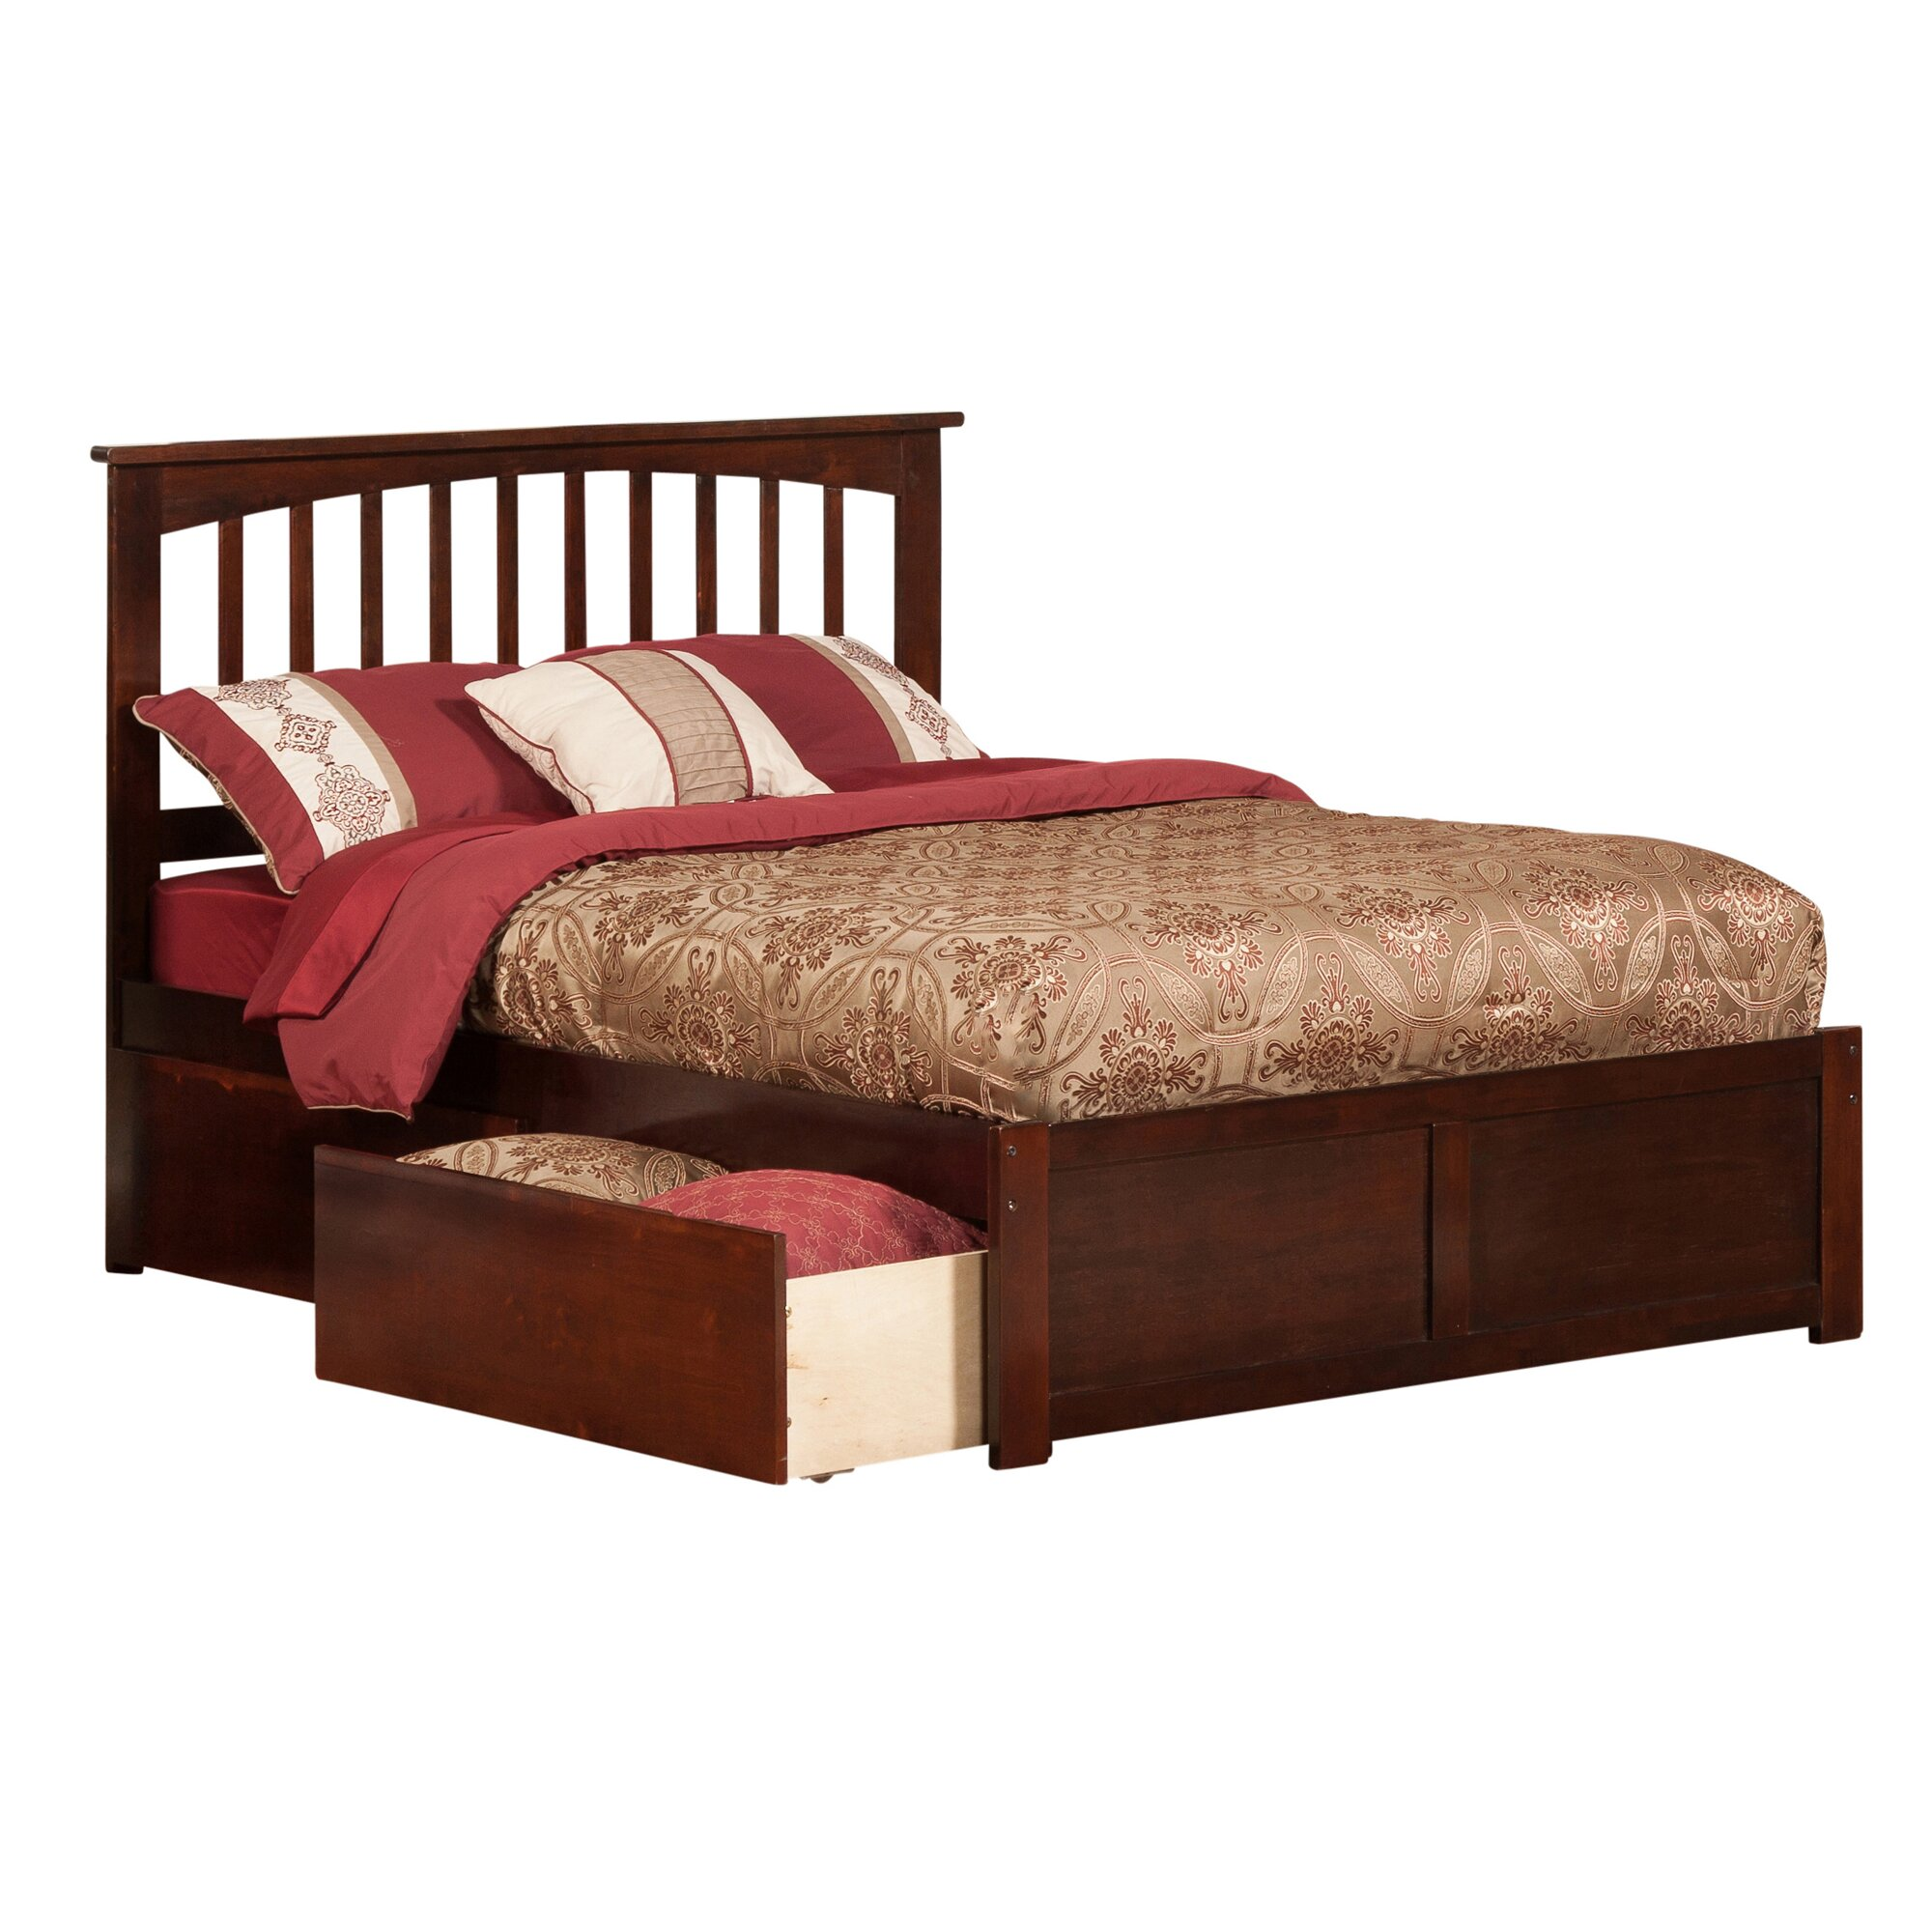 Viv rae enrique mission panel 3 piece bedroom set wayfair for Bedroom 3 piece sets